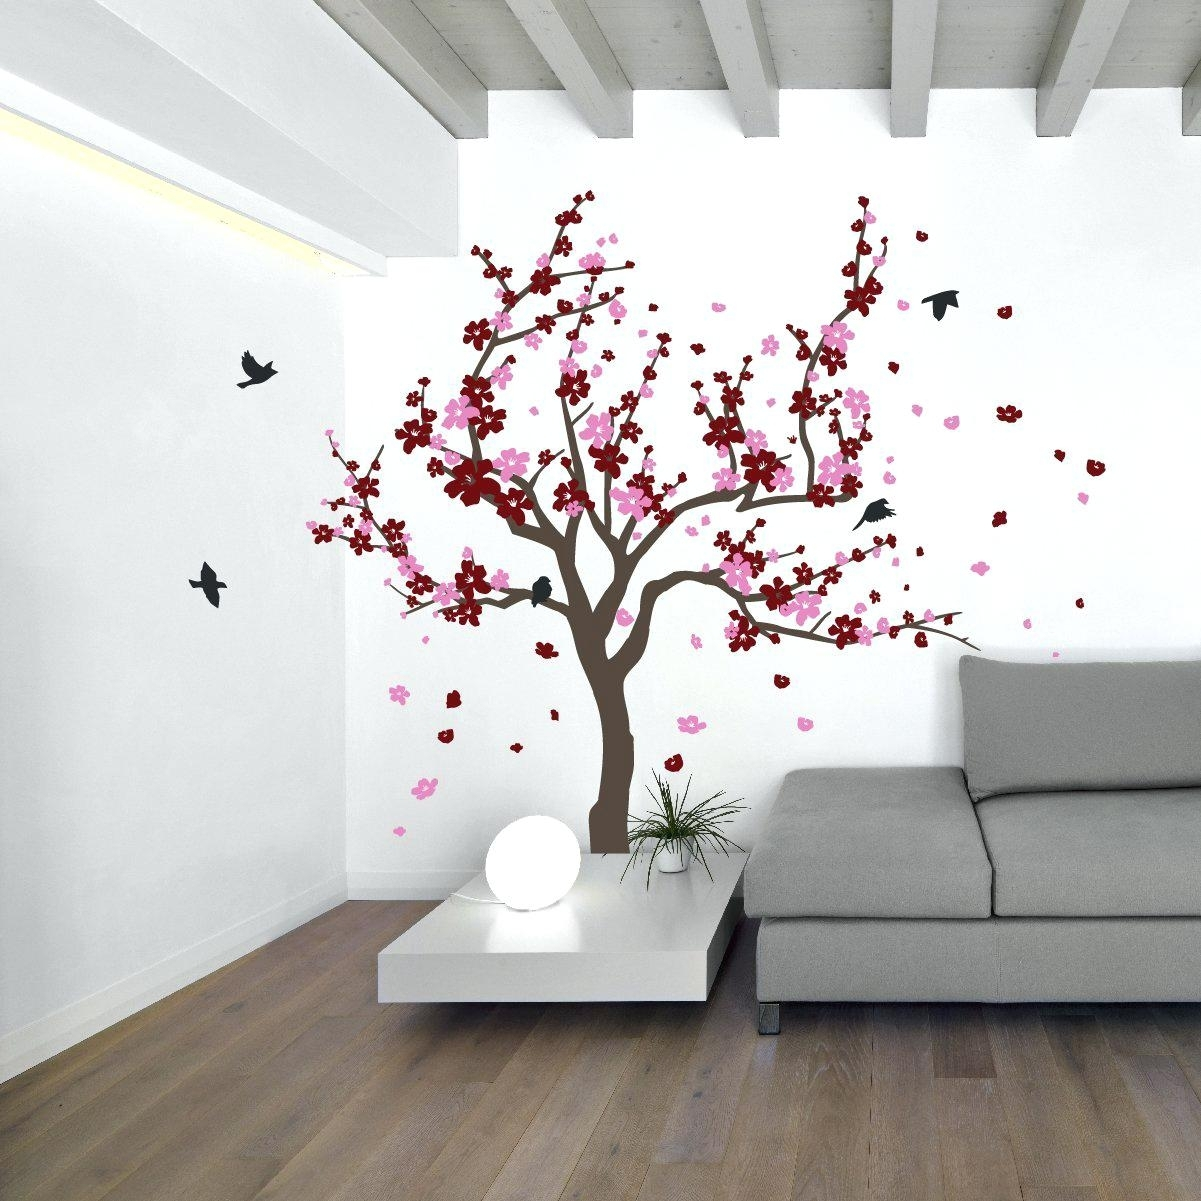 Blossom Tree Wall Decal Uk – Gutesleben Within Newest Cherry Blossom Wall Art (View 17 of 20)